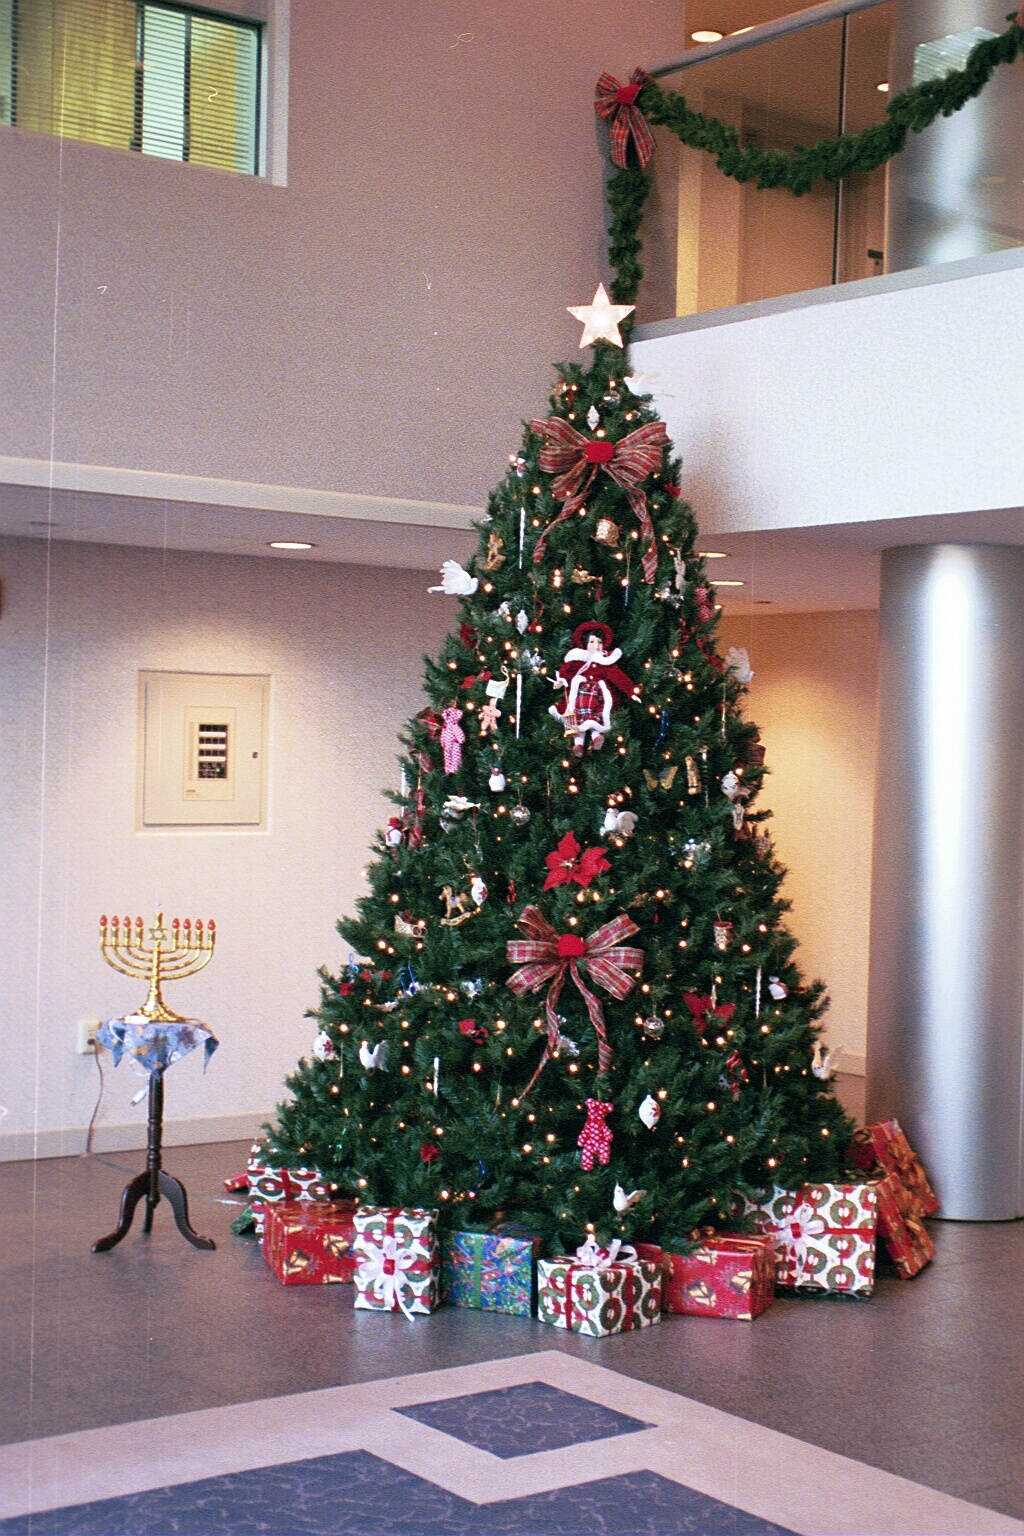 Shver zu zein ein yid it s hard to be a jew frume for Decorating 10ft christmas tree